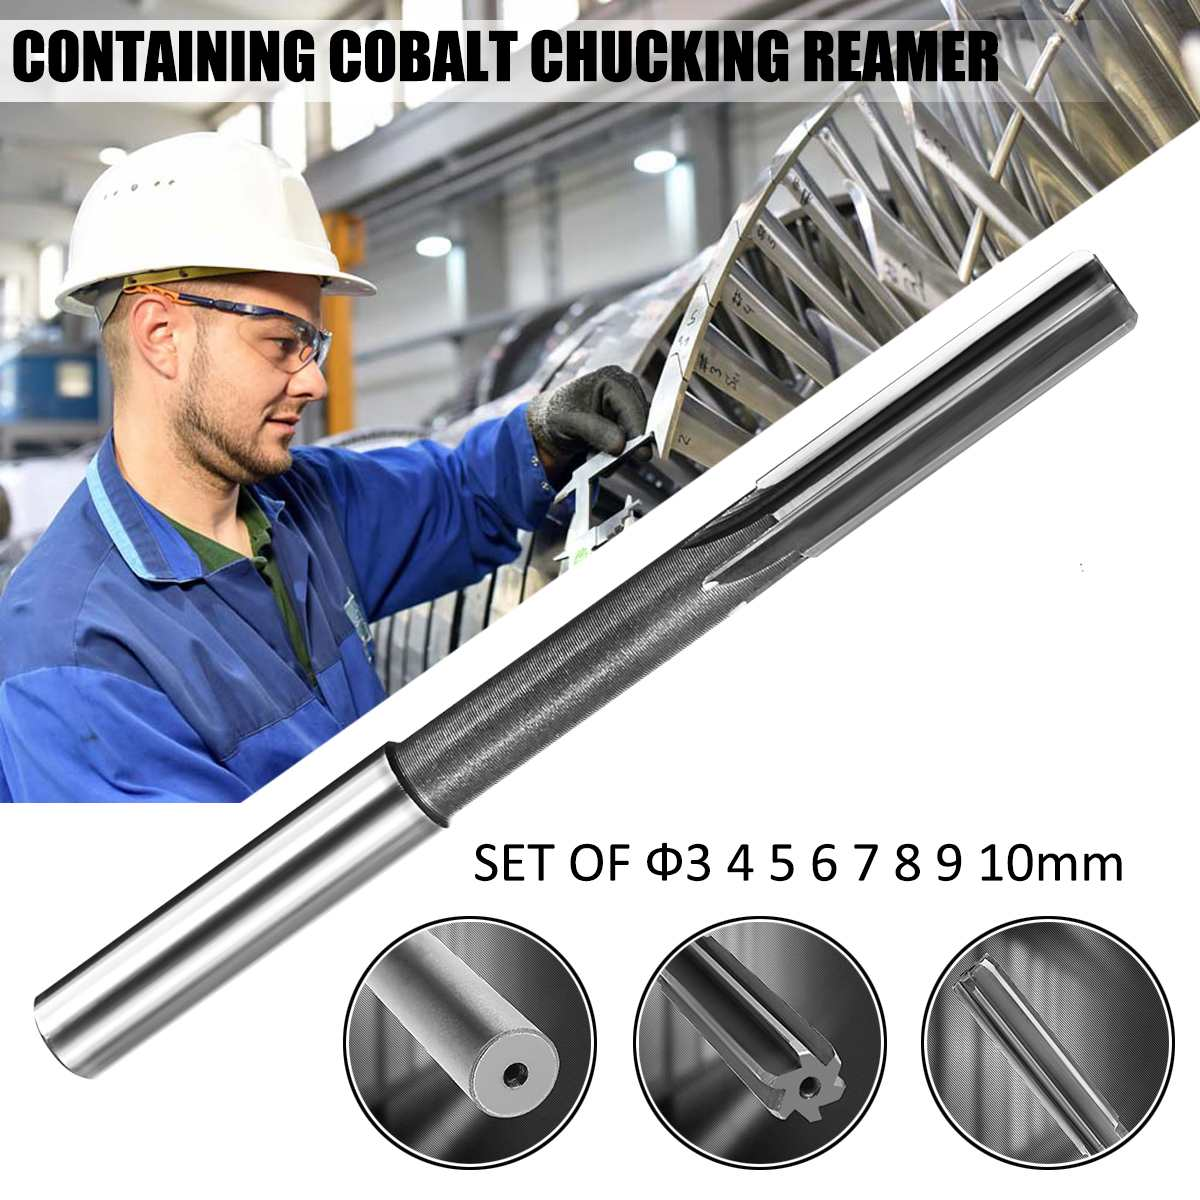 8pcs/set HSS H7 Machine Chucking Reamer Milling <font><b>Cutter</b></font> Set 3/4/5/6/7/<font><b>8</b></font>/9/10/<font><b>mm</b></font> Machine Cutting Tools image